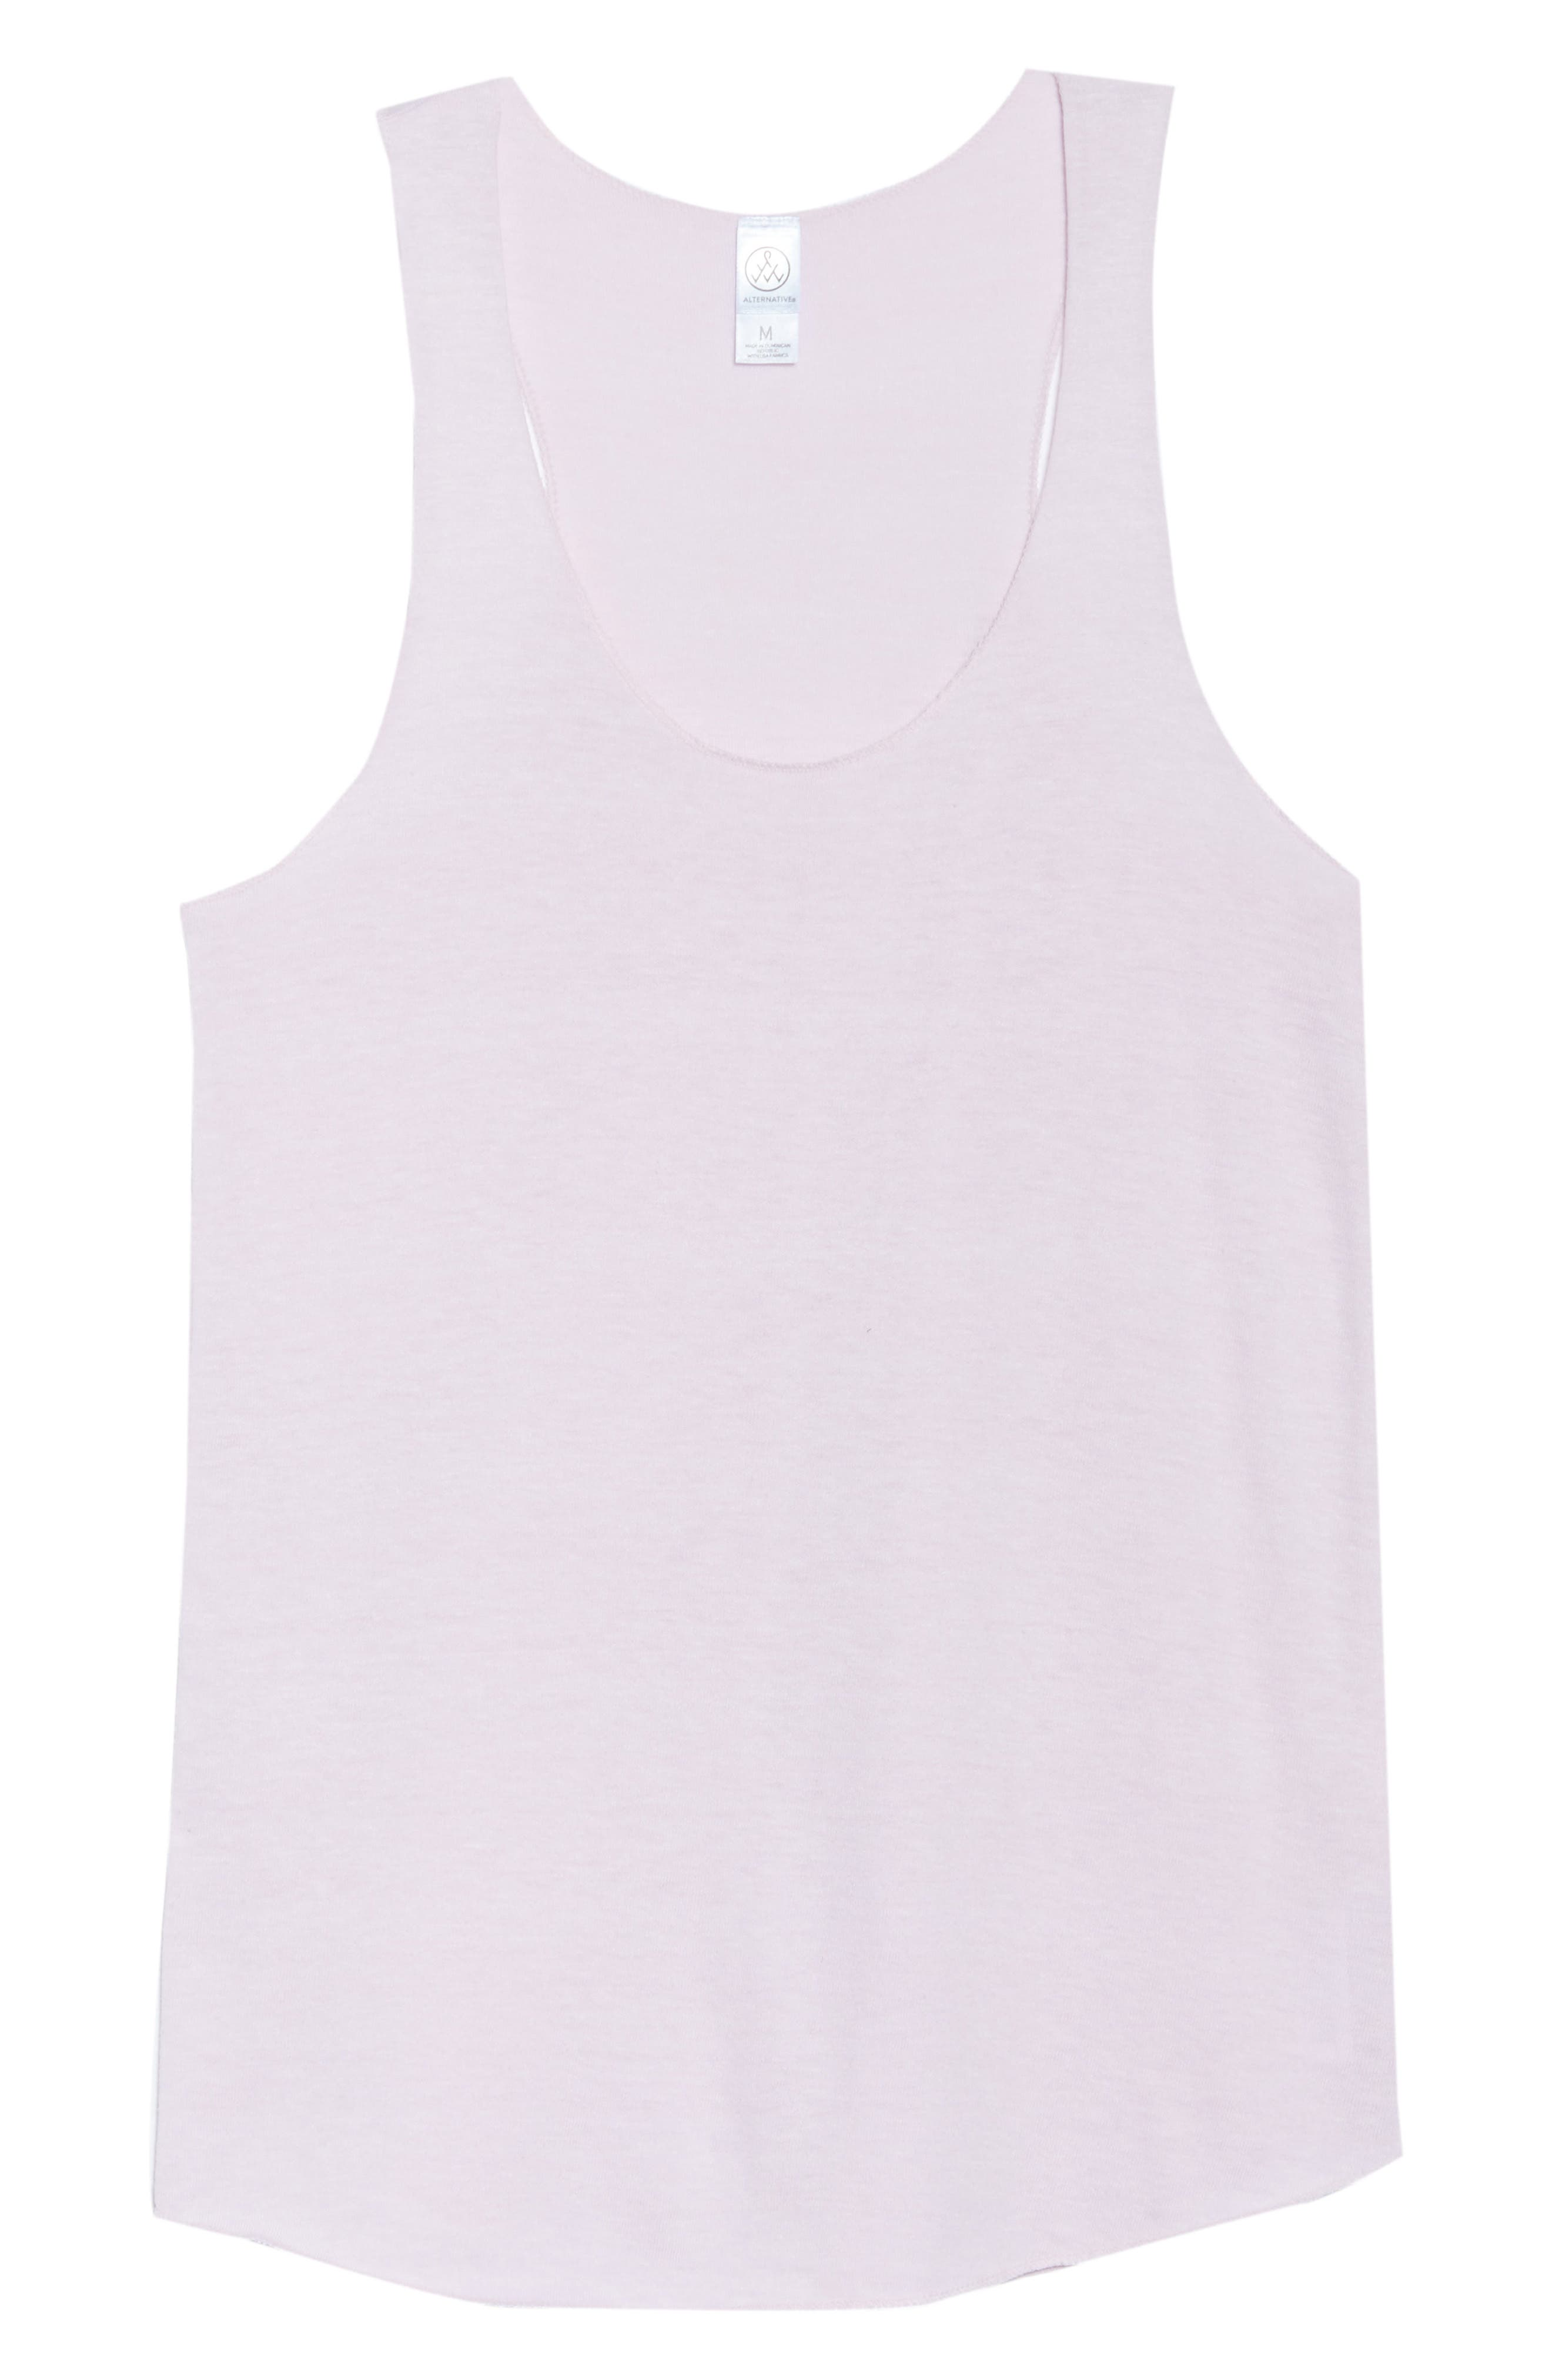 Meegs Racerback Tank,                             Alternate thumbnail 6, color,                             Eco Lilac Orchid